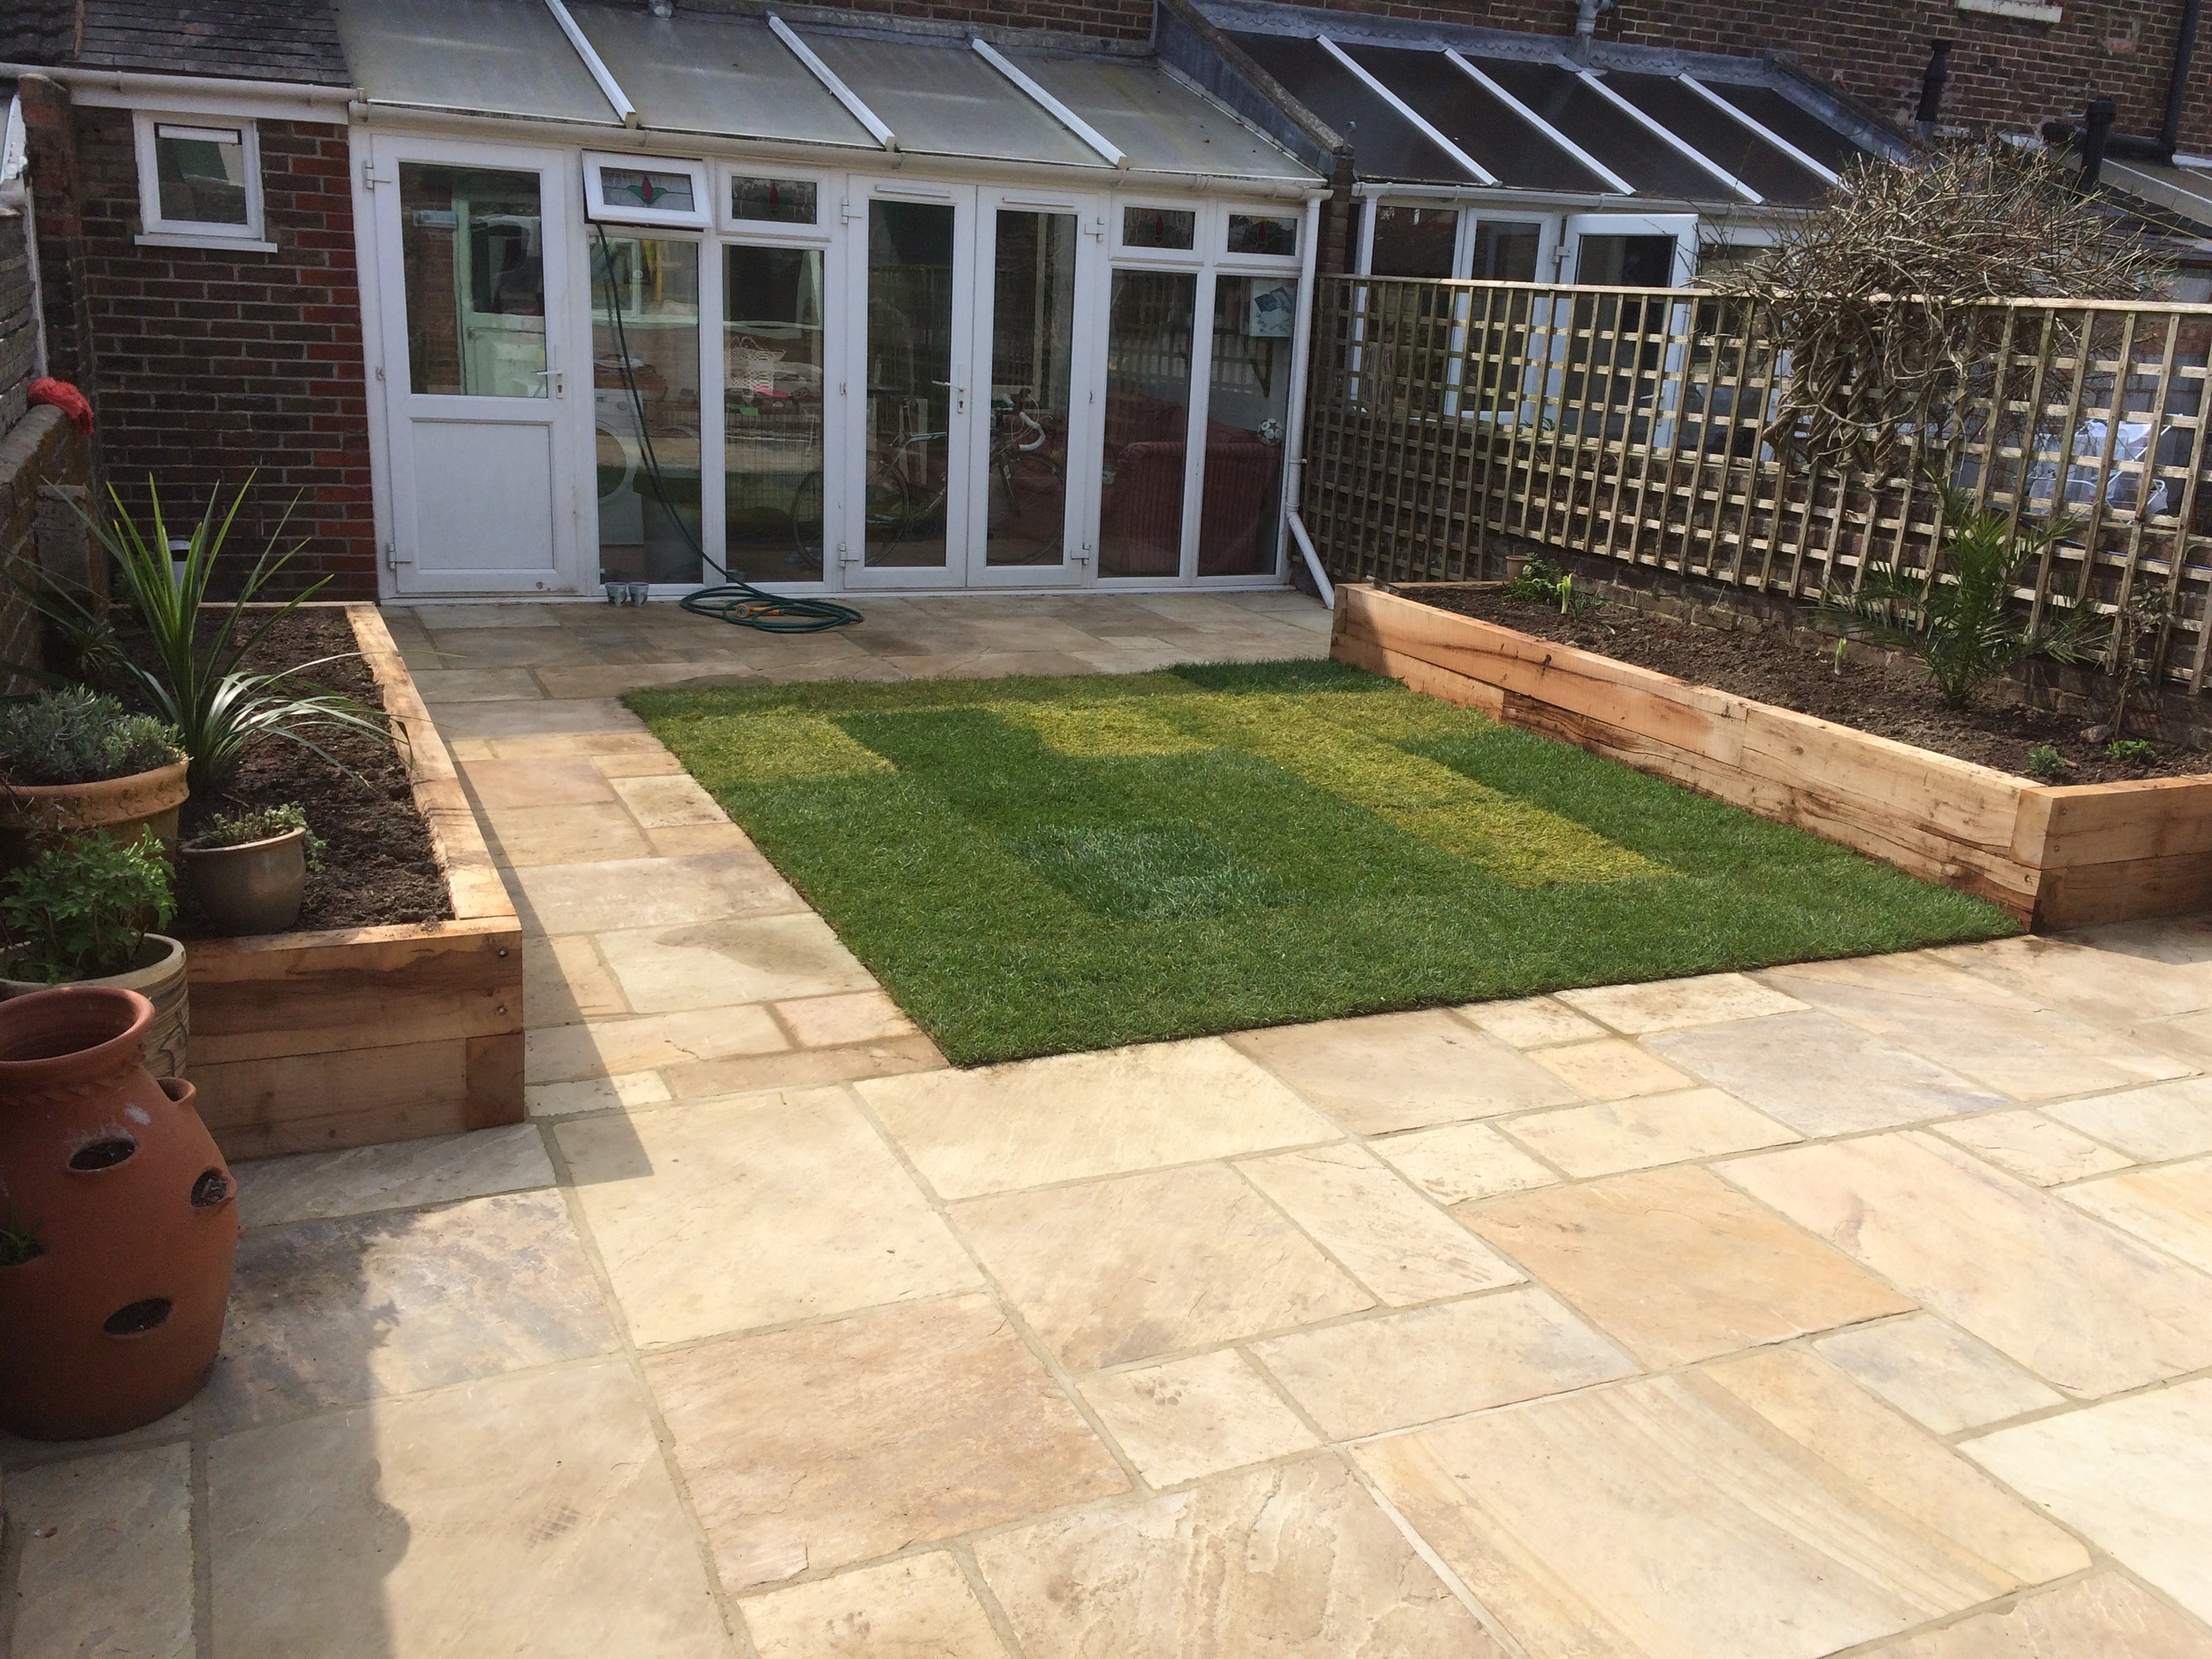 garden patio raised flower beds and